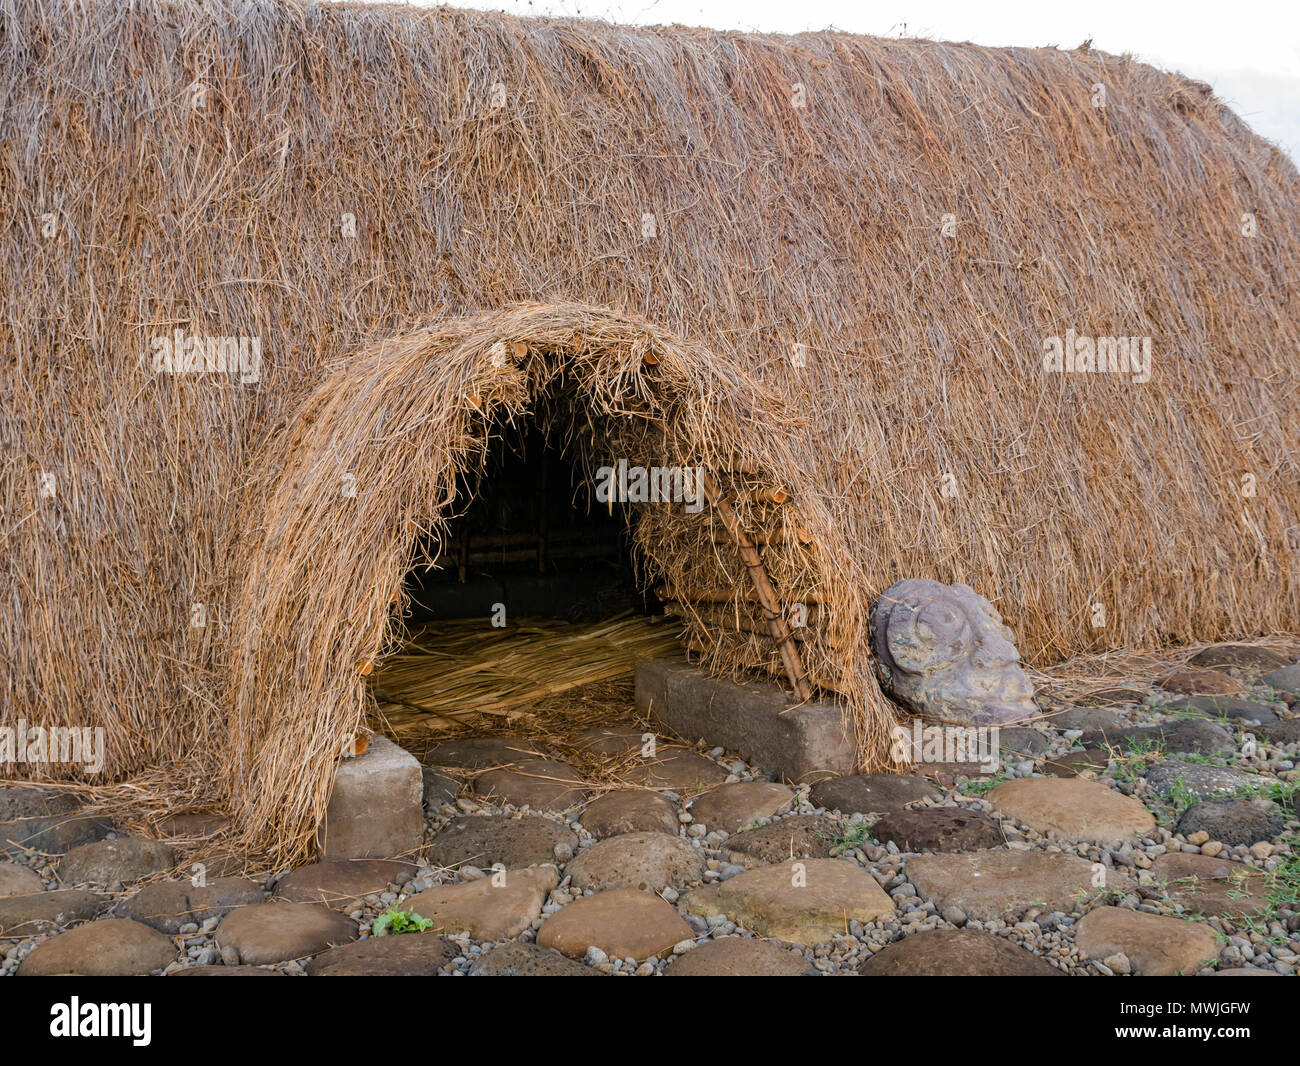 Entrance of reconstructed traditional thatched boat shaped house called Hare Paenga, Akahanga, Easter Island, Rapa Nui, Chile - Stock Image